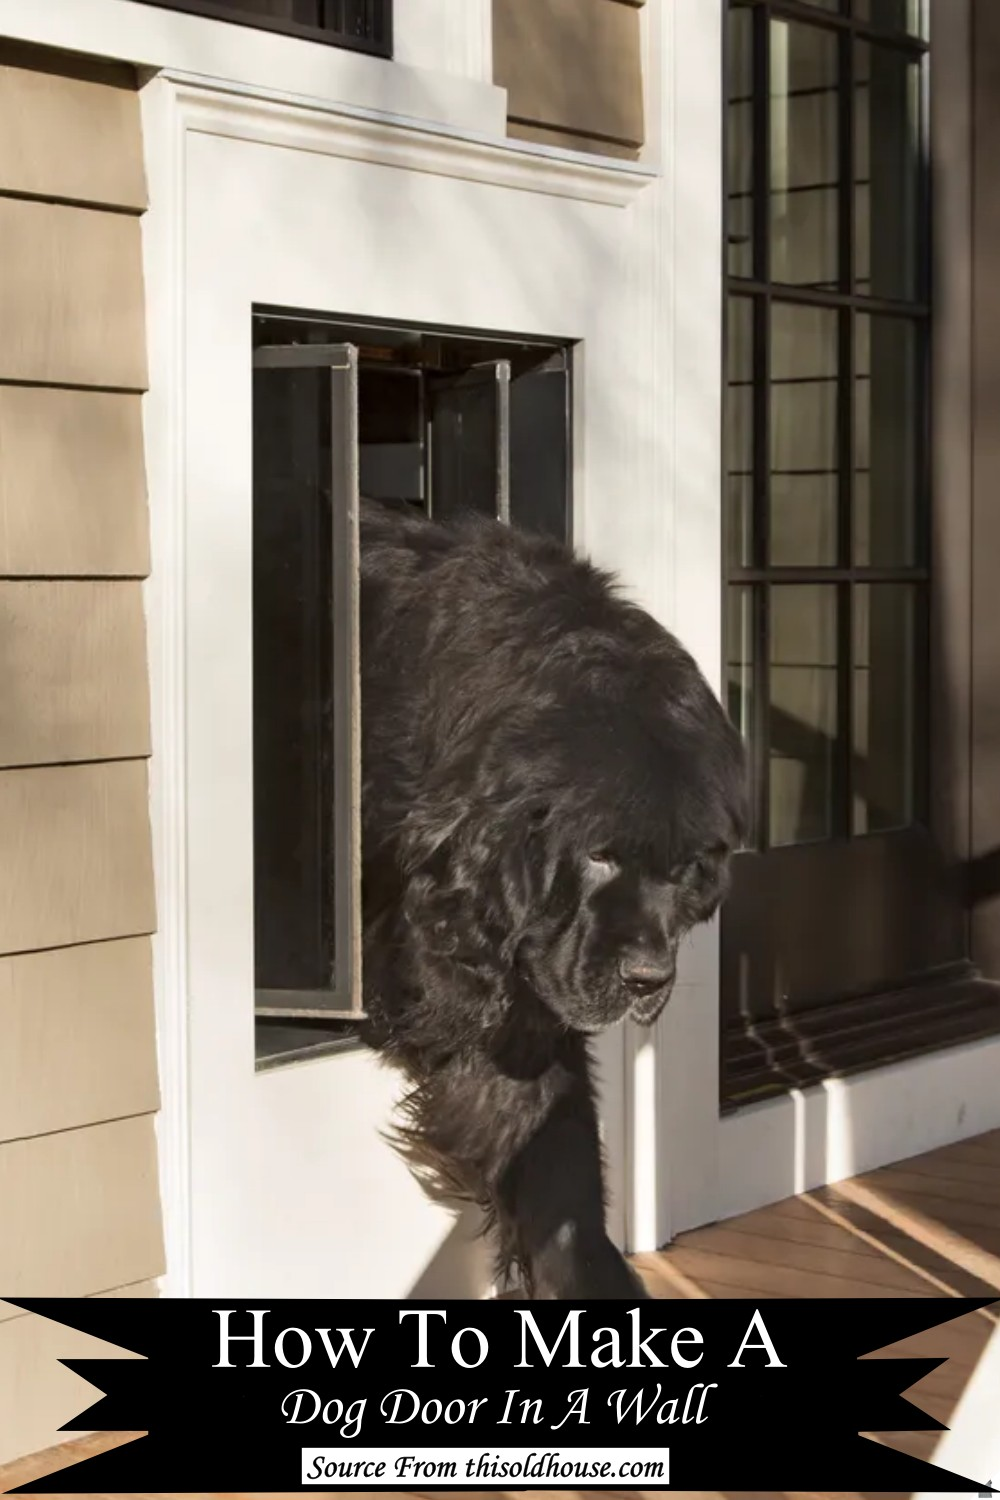 How To Make A Dog Door In A Wall